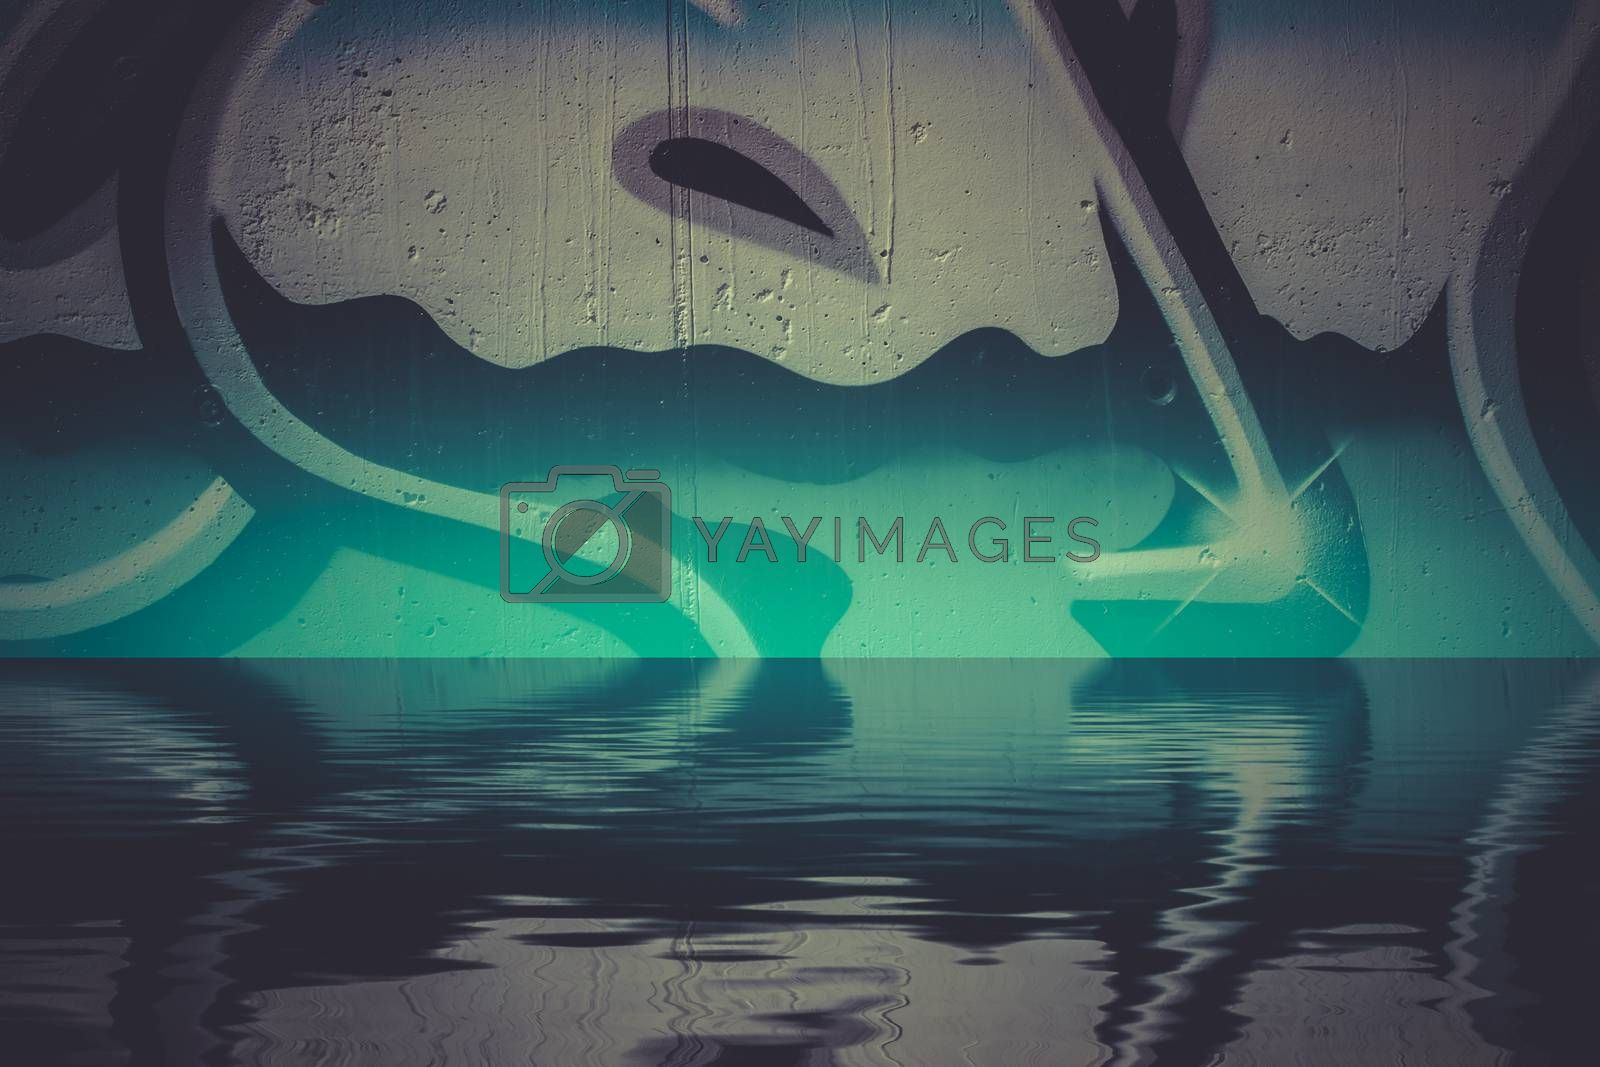 Abstract colorful graffiti reflection in the water, artistic chrome letters